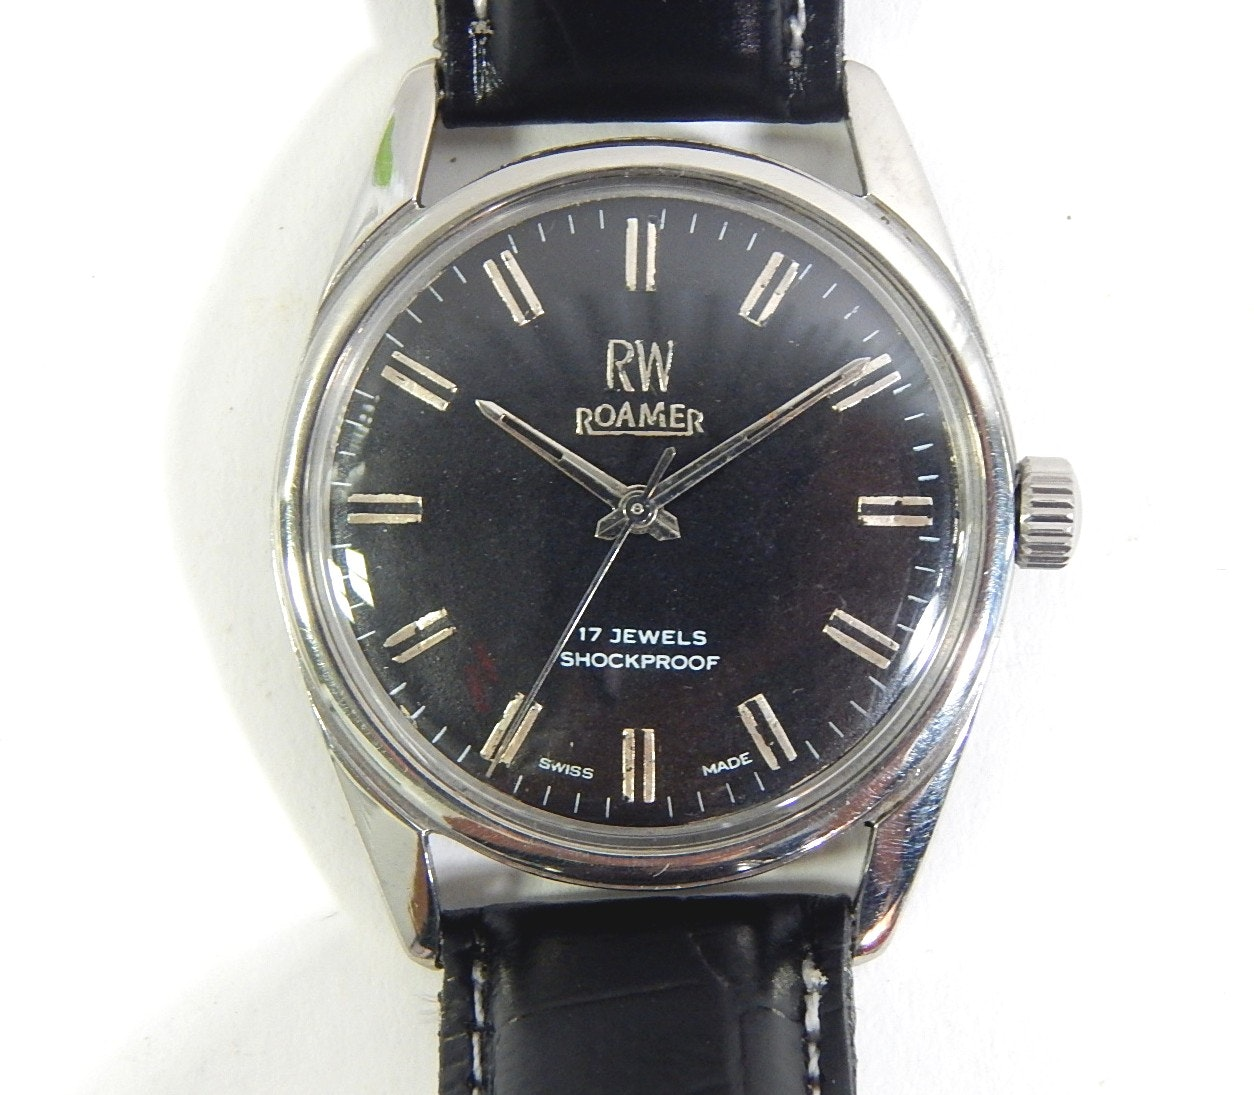 RW Roamer Vidar 17 Jewel Shockproof Swiss Made Silver-Tone Wristwatch